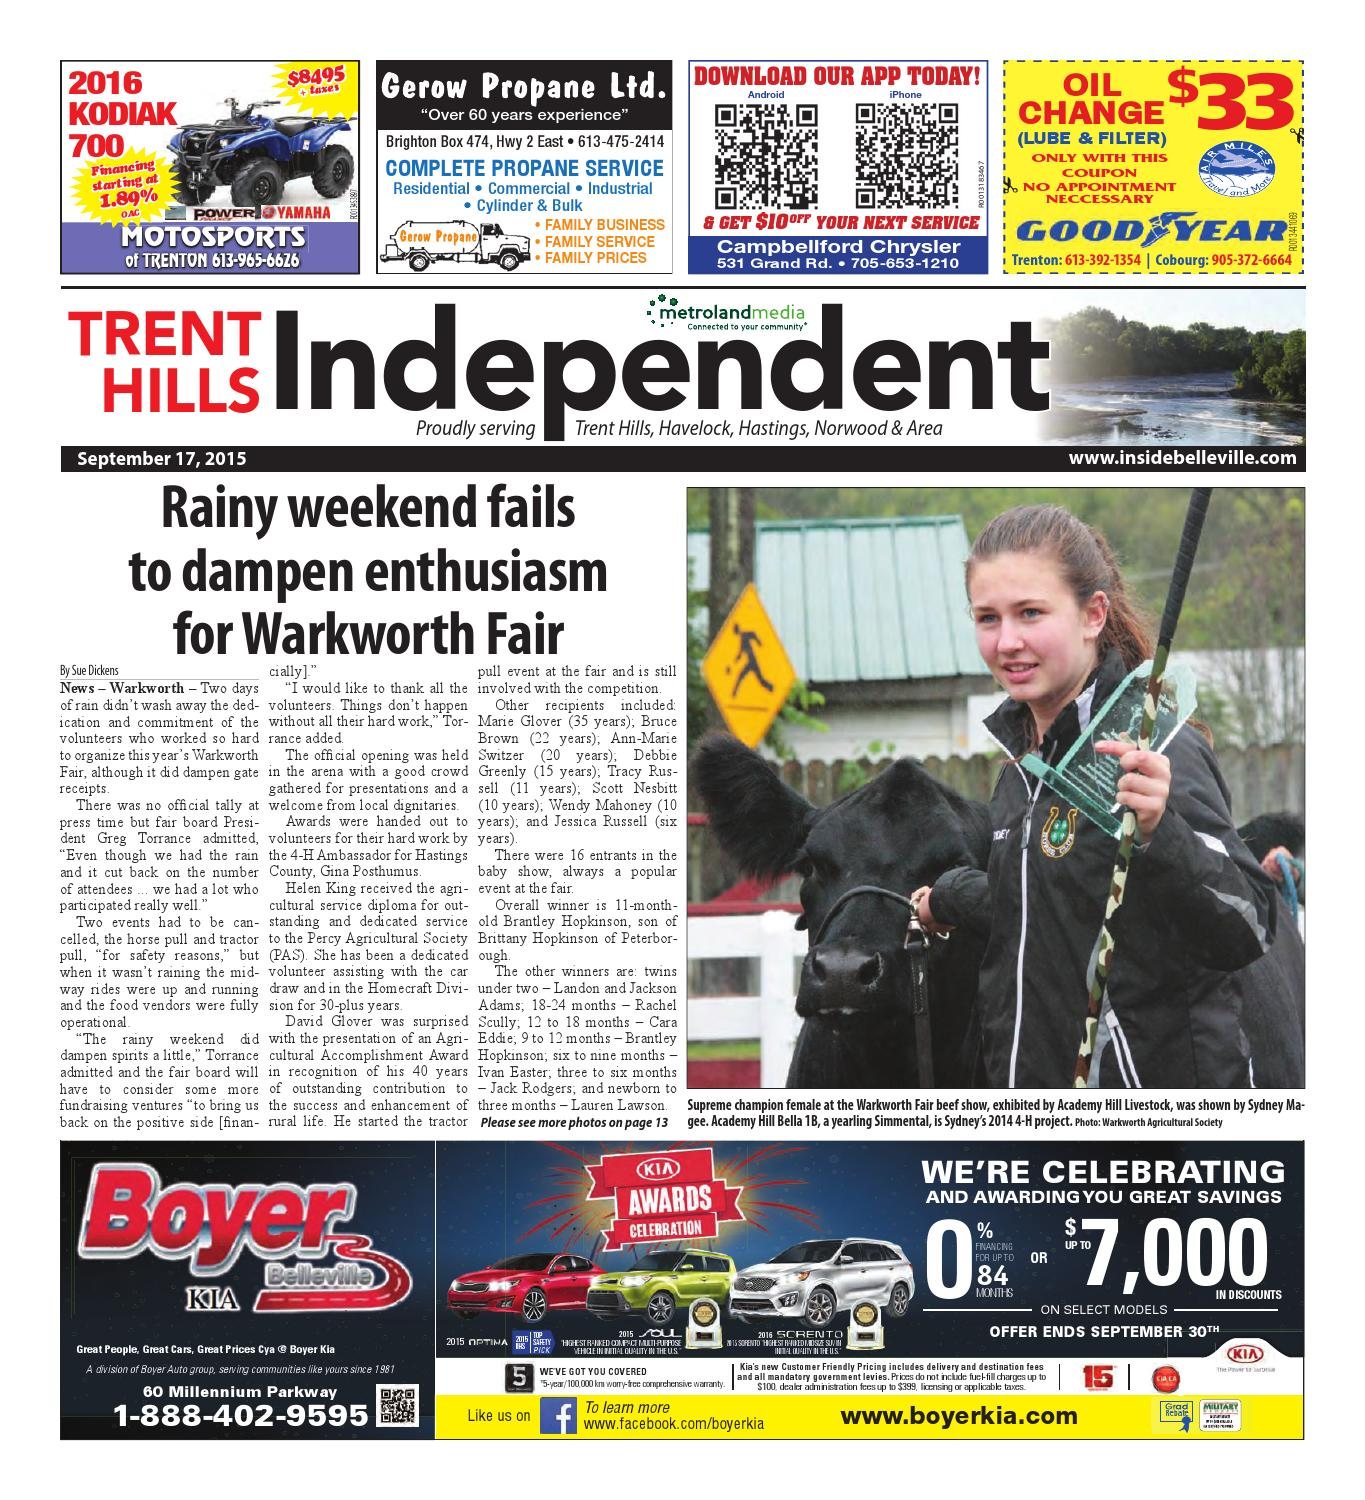 Trenthills091715 By Metroland East Trent Hills Independent Issuu